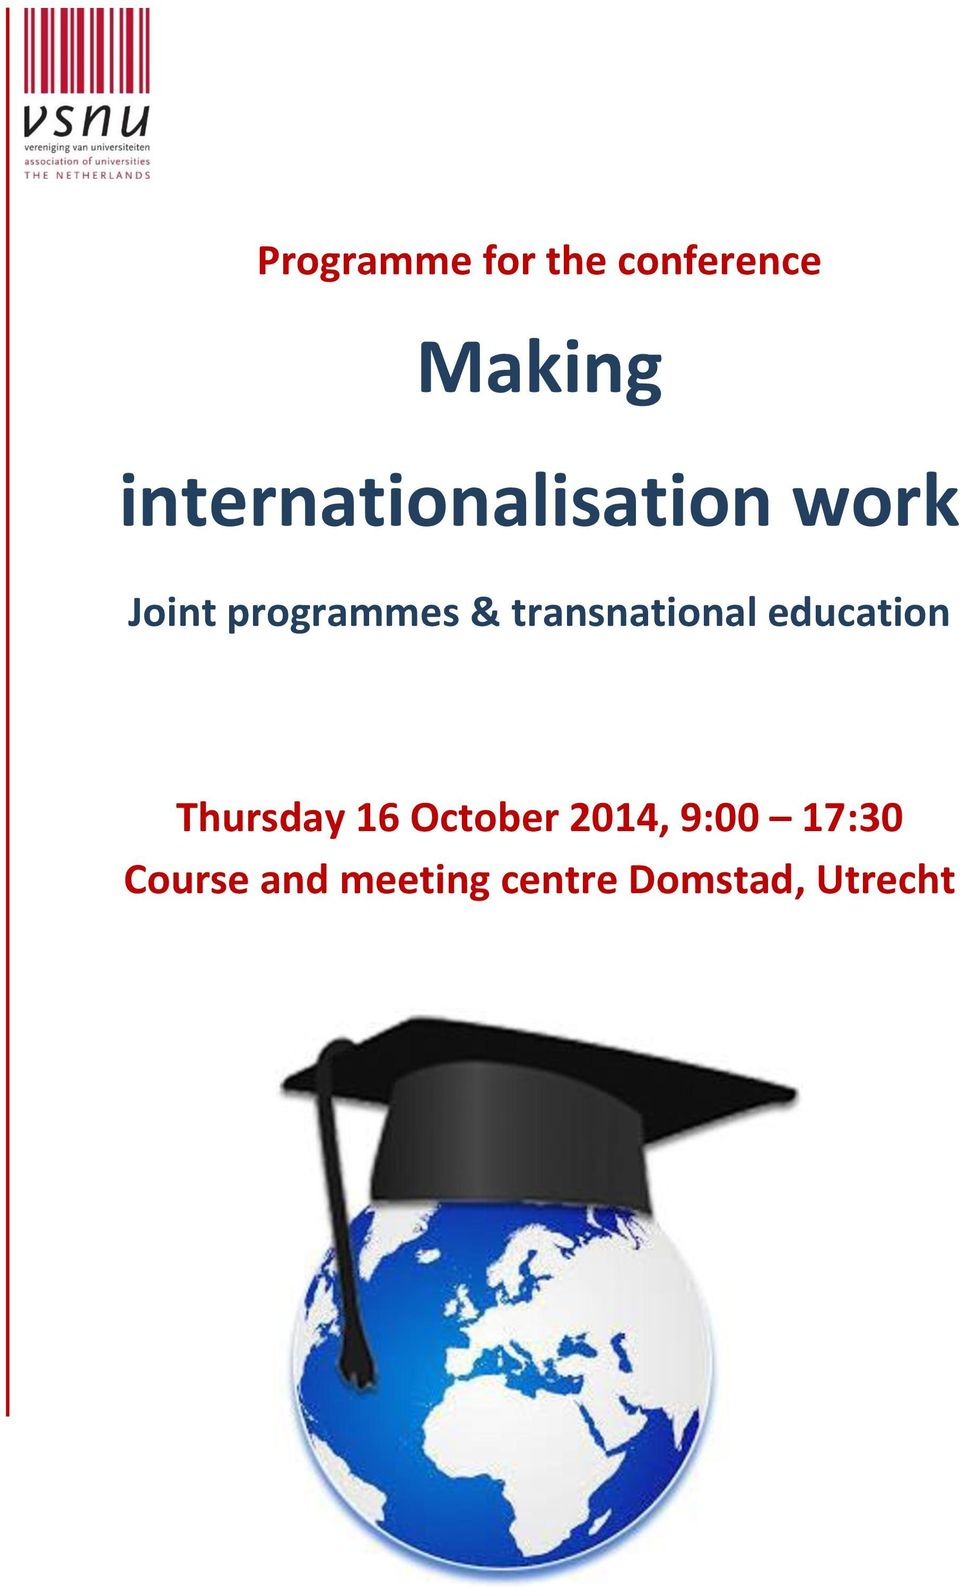 transnational education Thursday 16 October